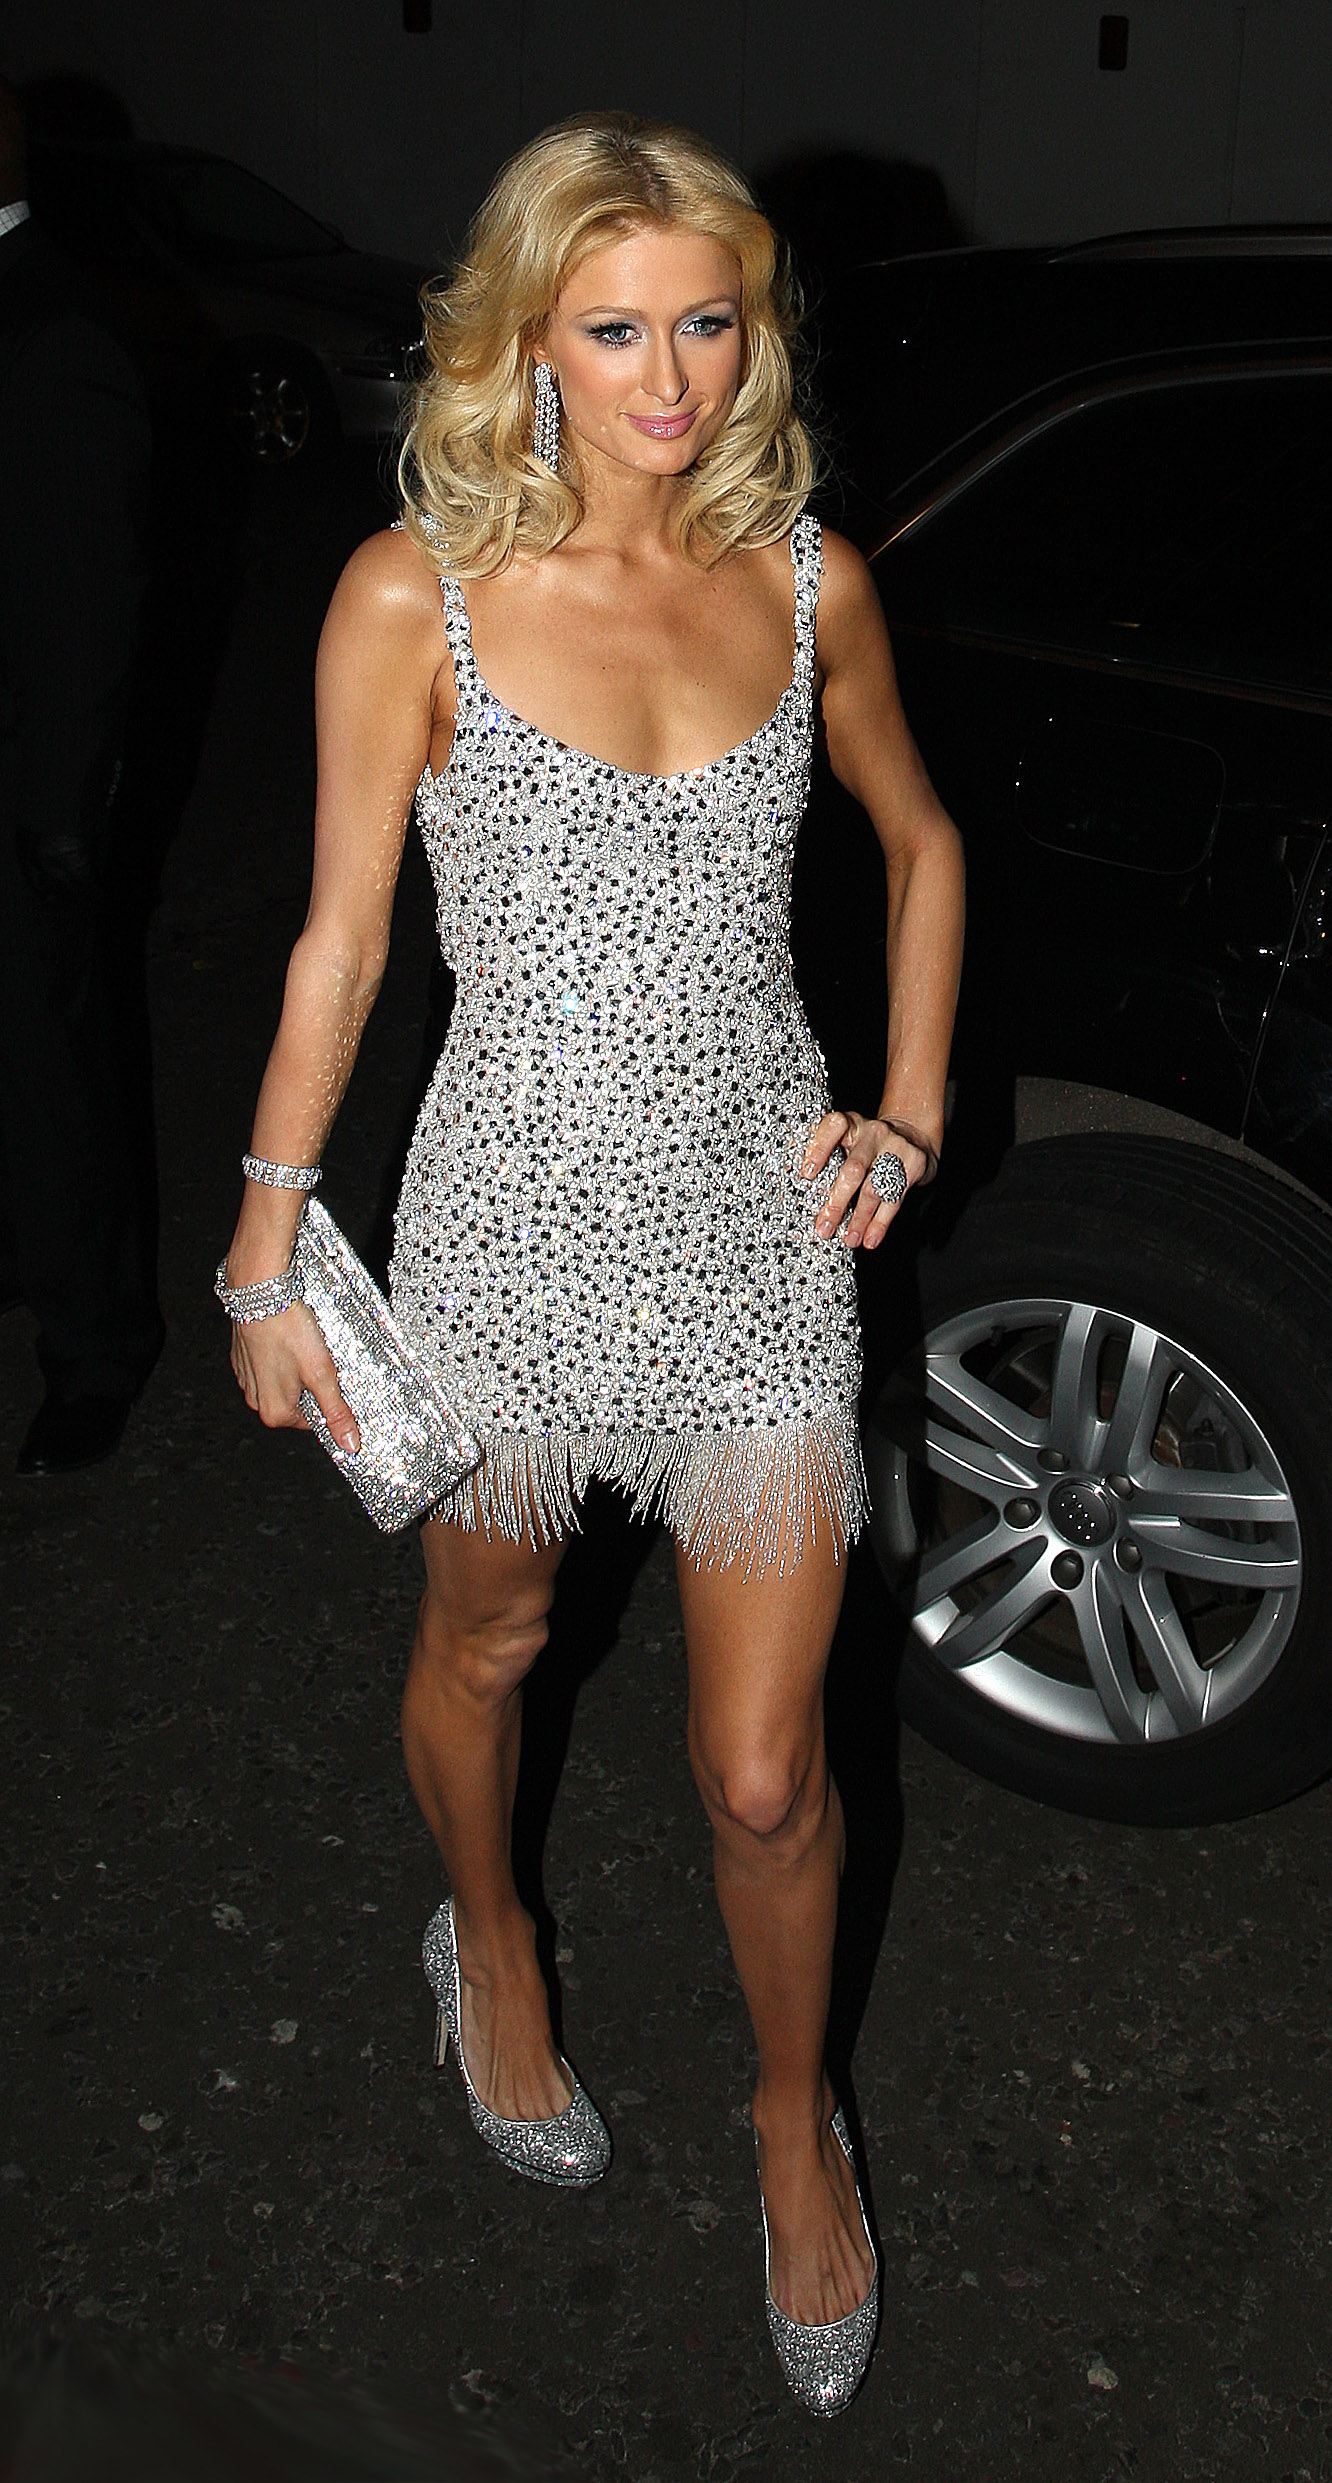 29th October 2008. Paris Hilton is pictured outside of the National Television Awards, The Royal Albert Hall, London.,Image: 27878613, License: Rights-managed, Restrictions: , Model Release: no, Credit line: Weir / Goff Photos / Profimedia